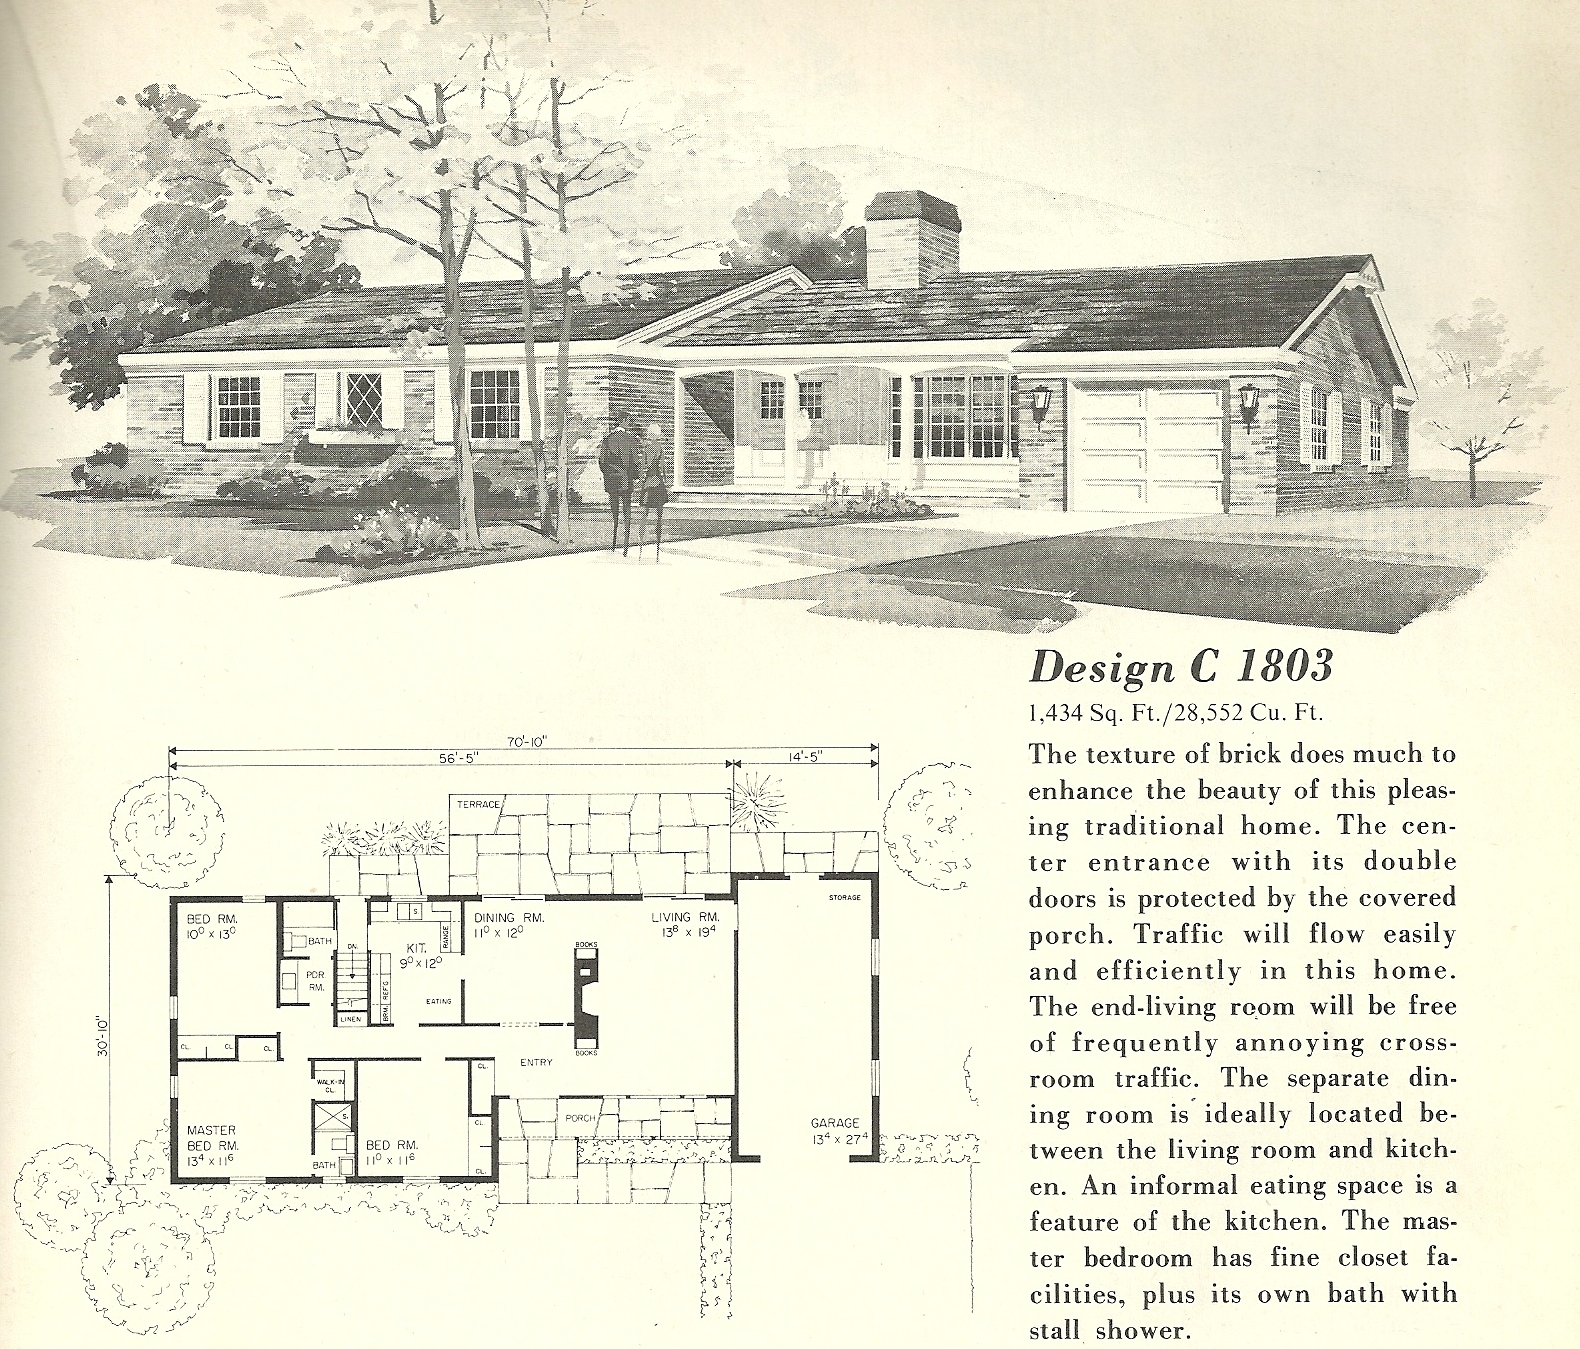 Vintage house plans 1803 antique alter ego House layout design